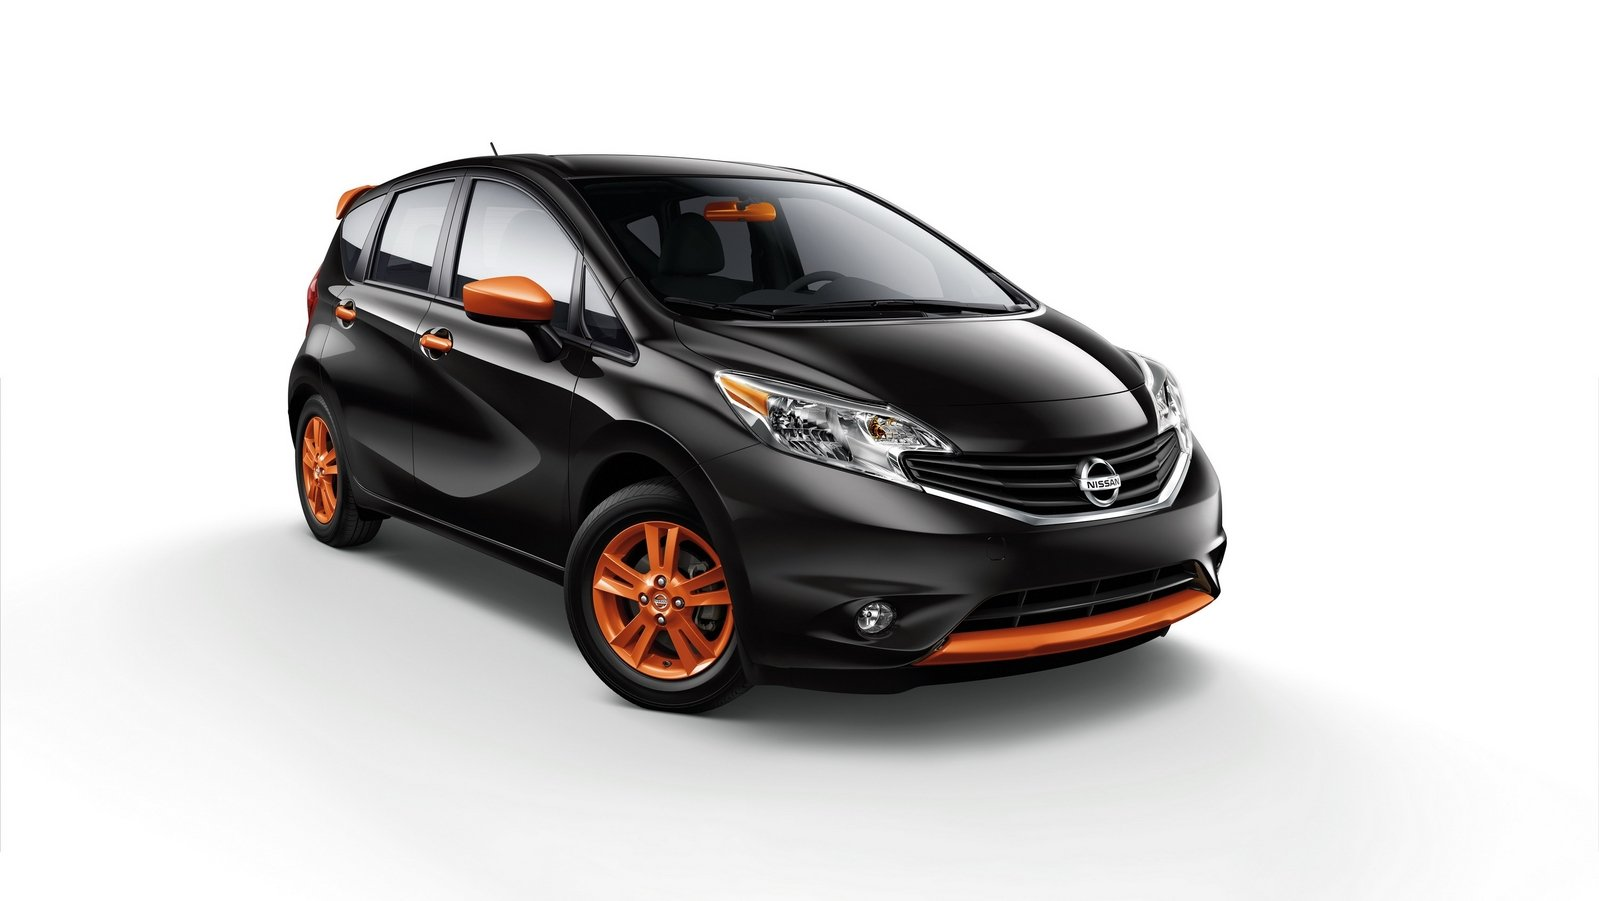 2016 nissan versa note color studio review top speed. Black Bedroom Furniture Sets. Home Design Ideas